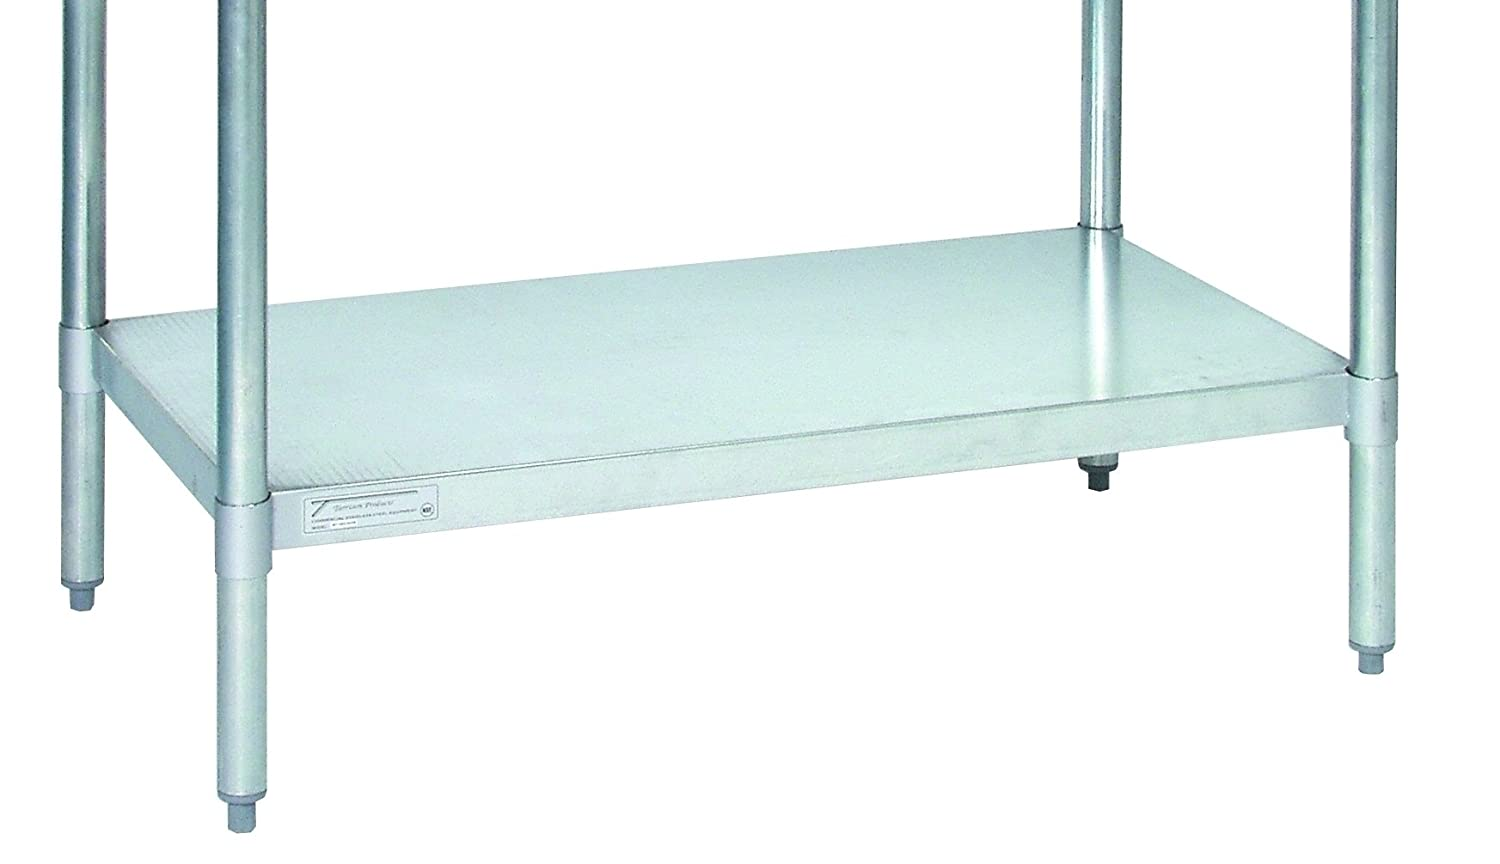 Tarrison US2448S Stainless Steel Undershelf for Work Table, 48 Length x 24 Width ey products e my creative wood table clock khaki 1 x aa